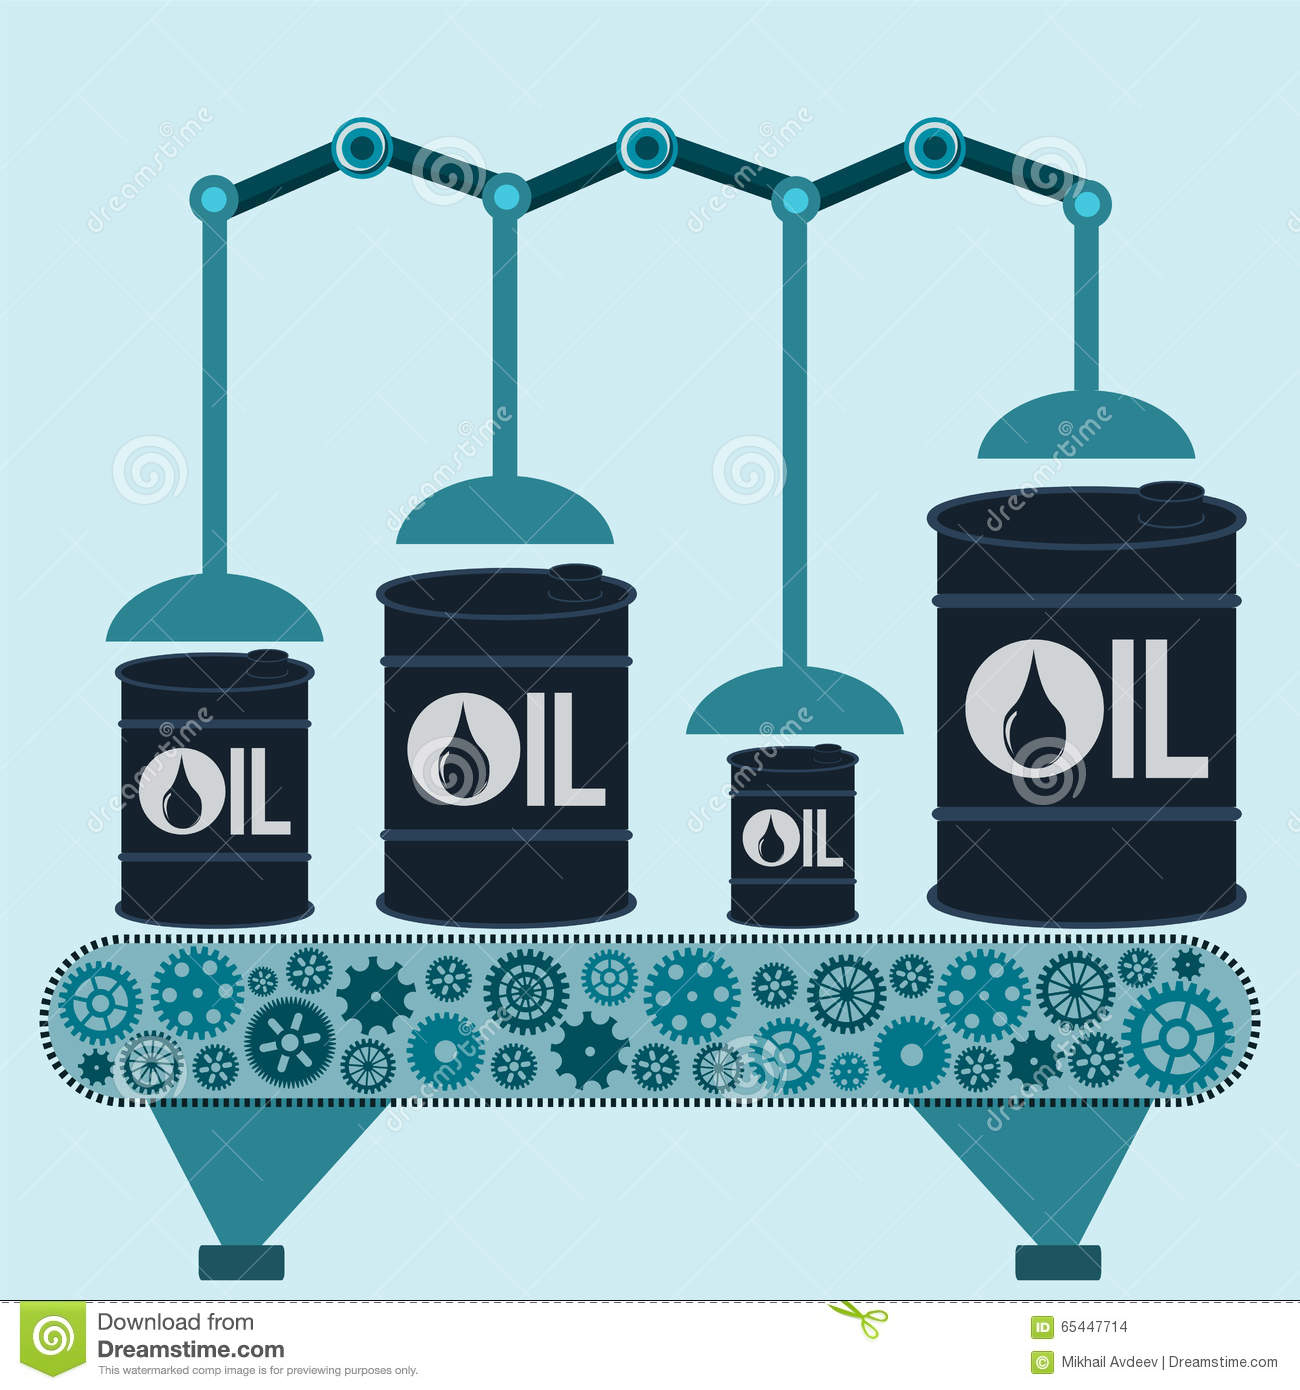 The machine makes barrels of oil. Oil production.